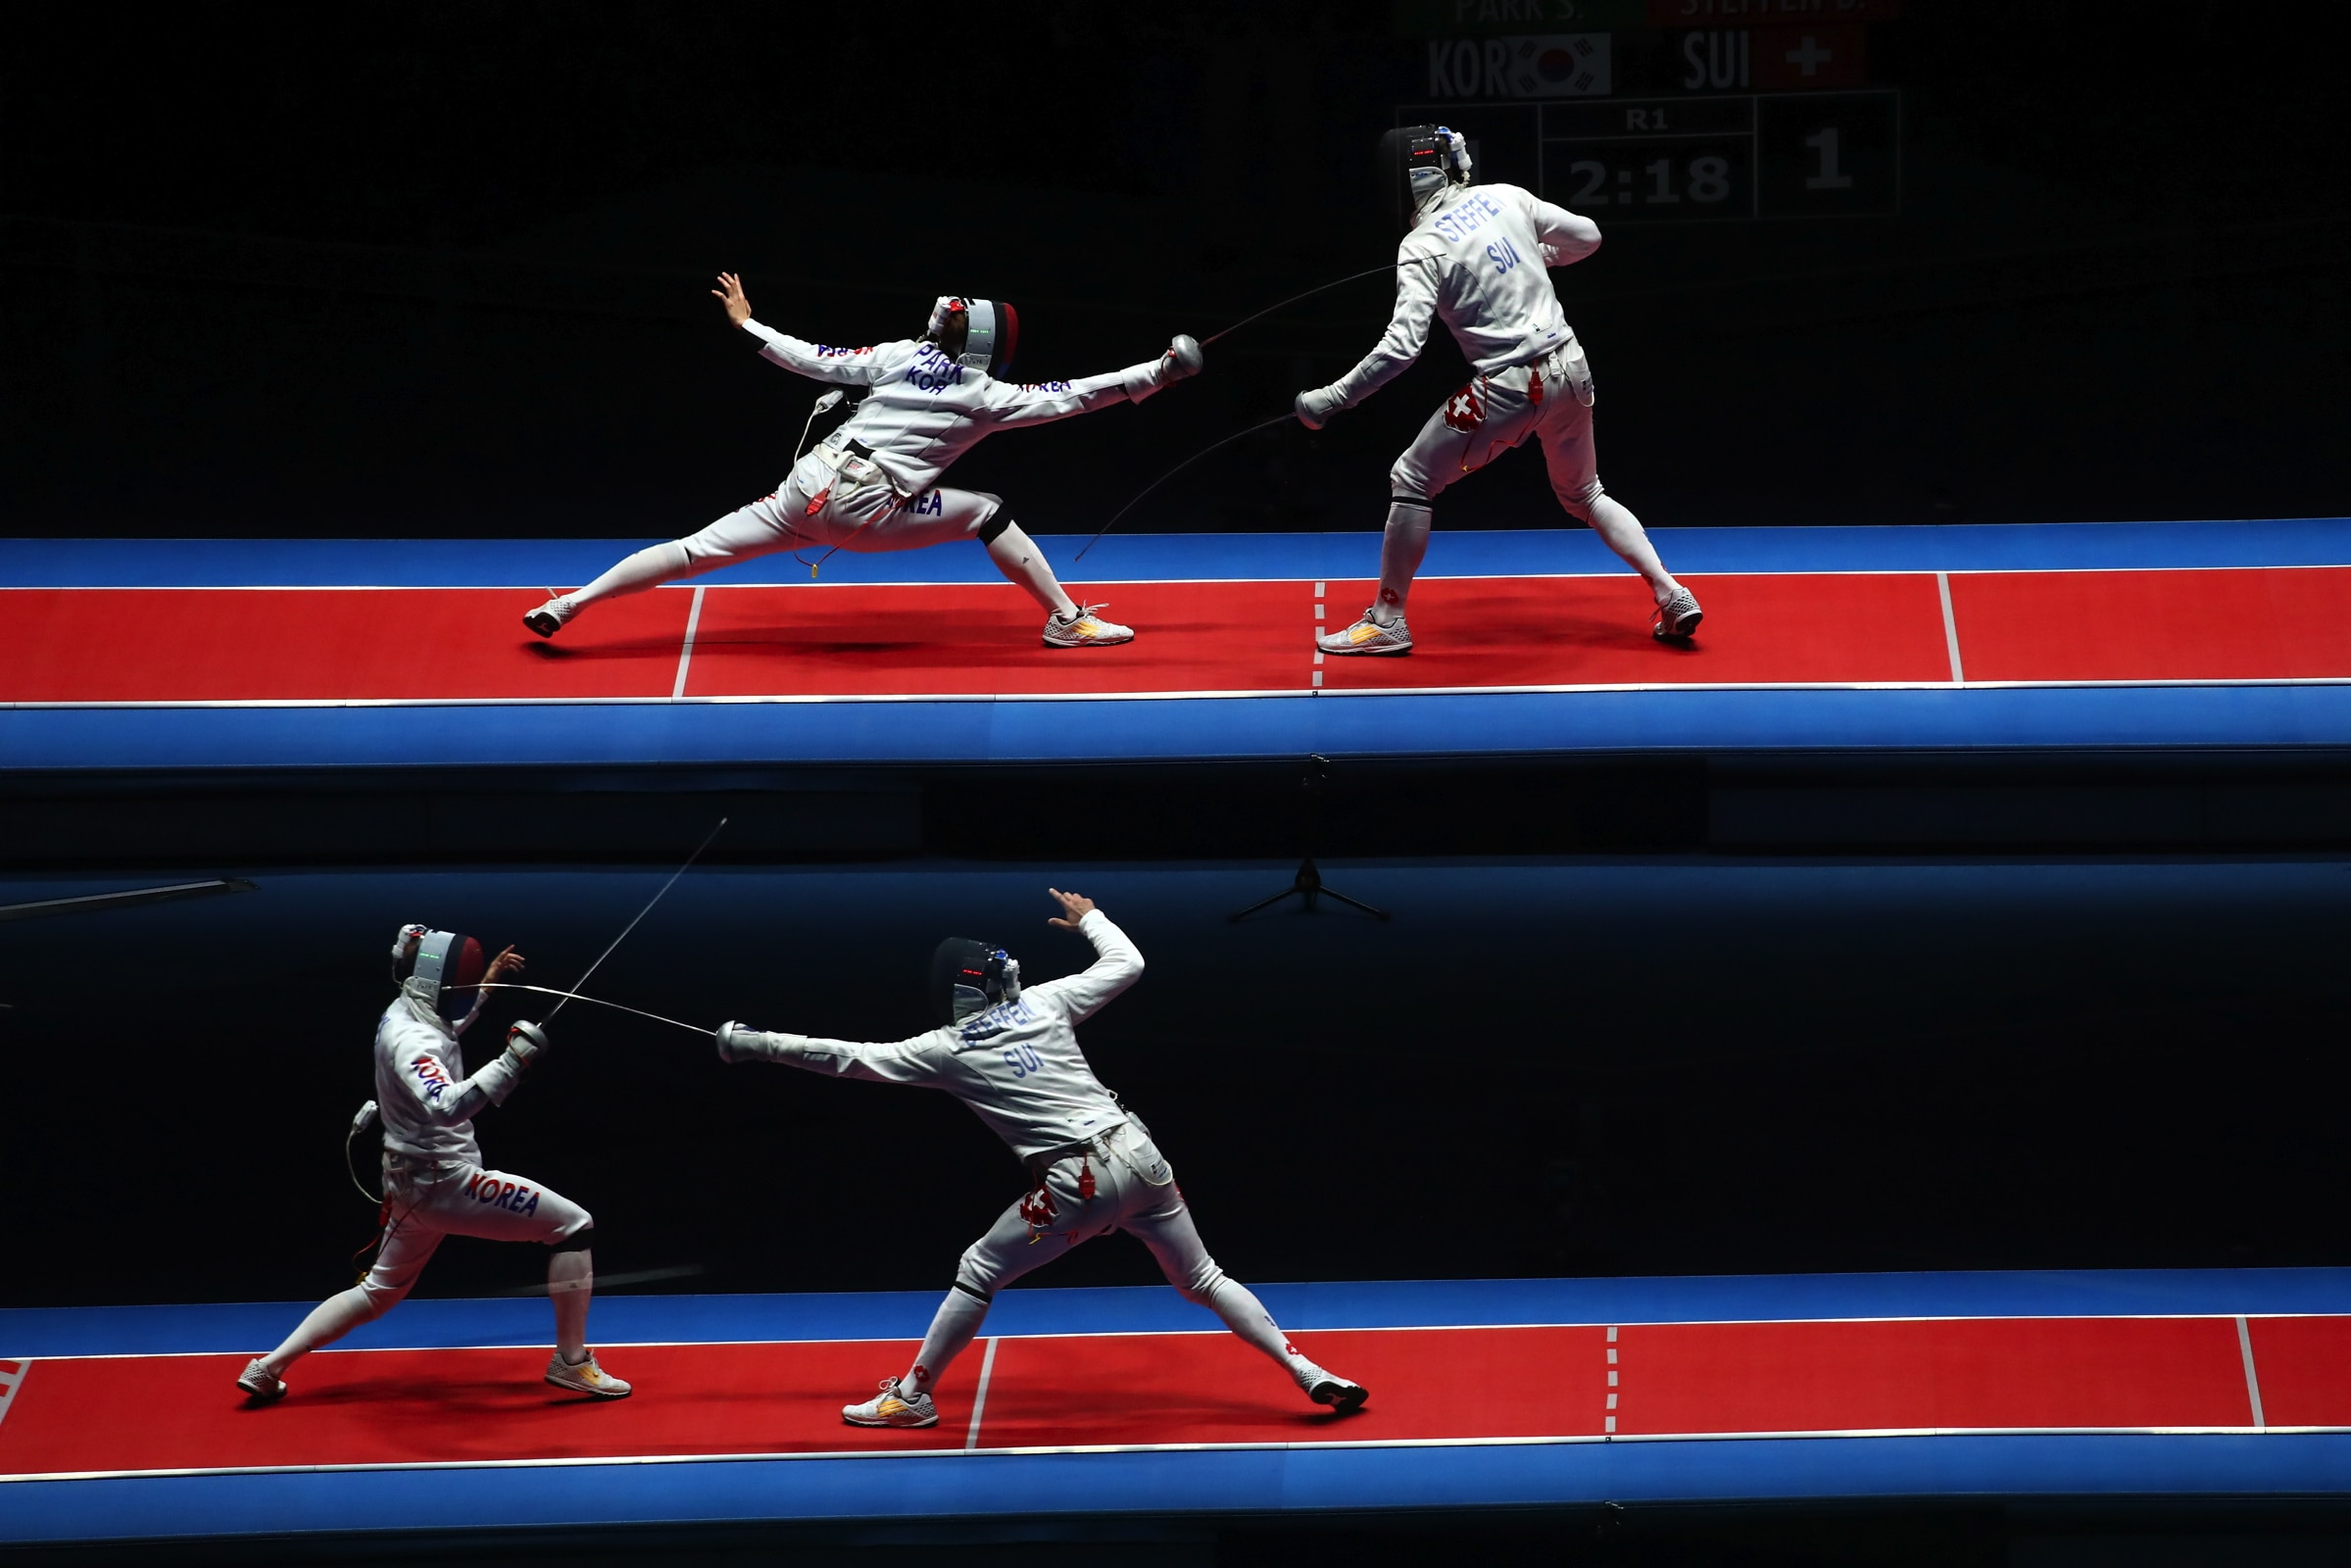 Fencing - Epee individual men